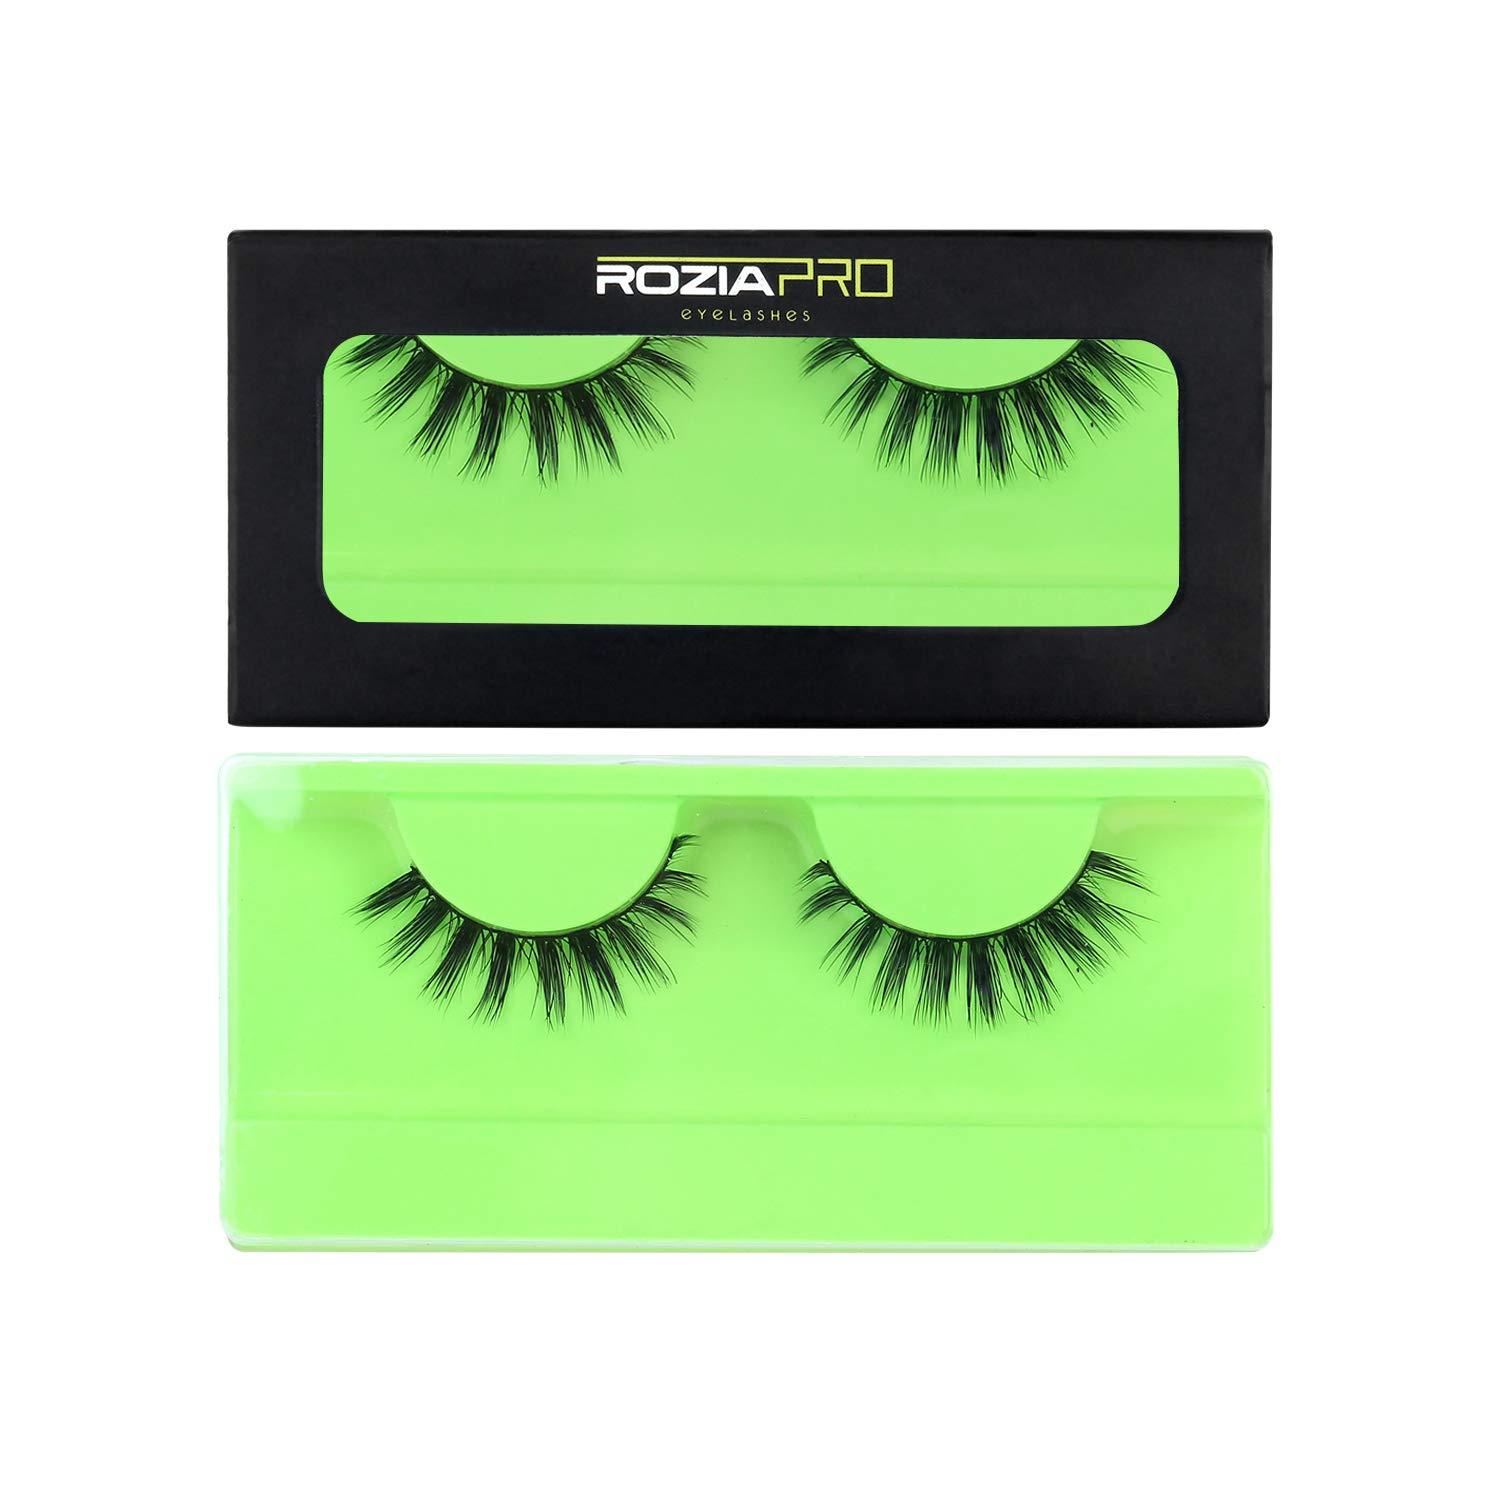 Rozia Artificial Eyelashes Ultra Natural Looking Lashes Perfect For First-Time Lash Users Fuller Lash With Slightly Tapered Inner And Outer Corners